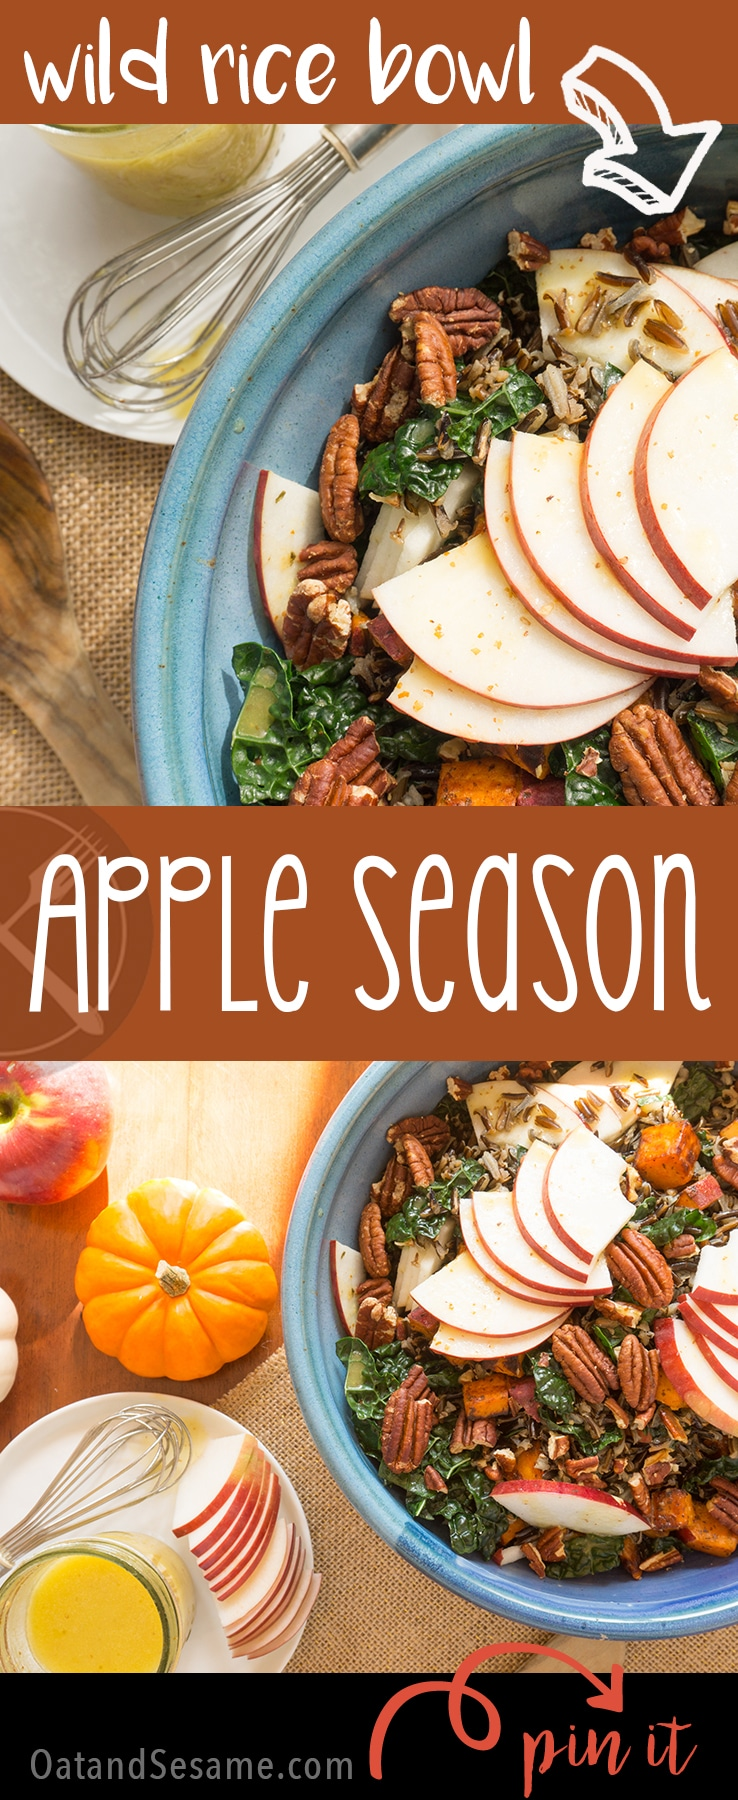 Wild Rice with Apples, Kale and Cider Vinaigrette is my most favorite fall creation yet! Full of greens and packed with apple flavors, it's an irresistible combination | #SALAD | #WILDRICE | #FALL | #APPLES | #Recipes at OatandSesame.com